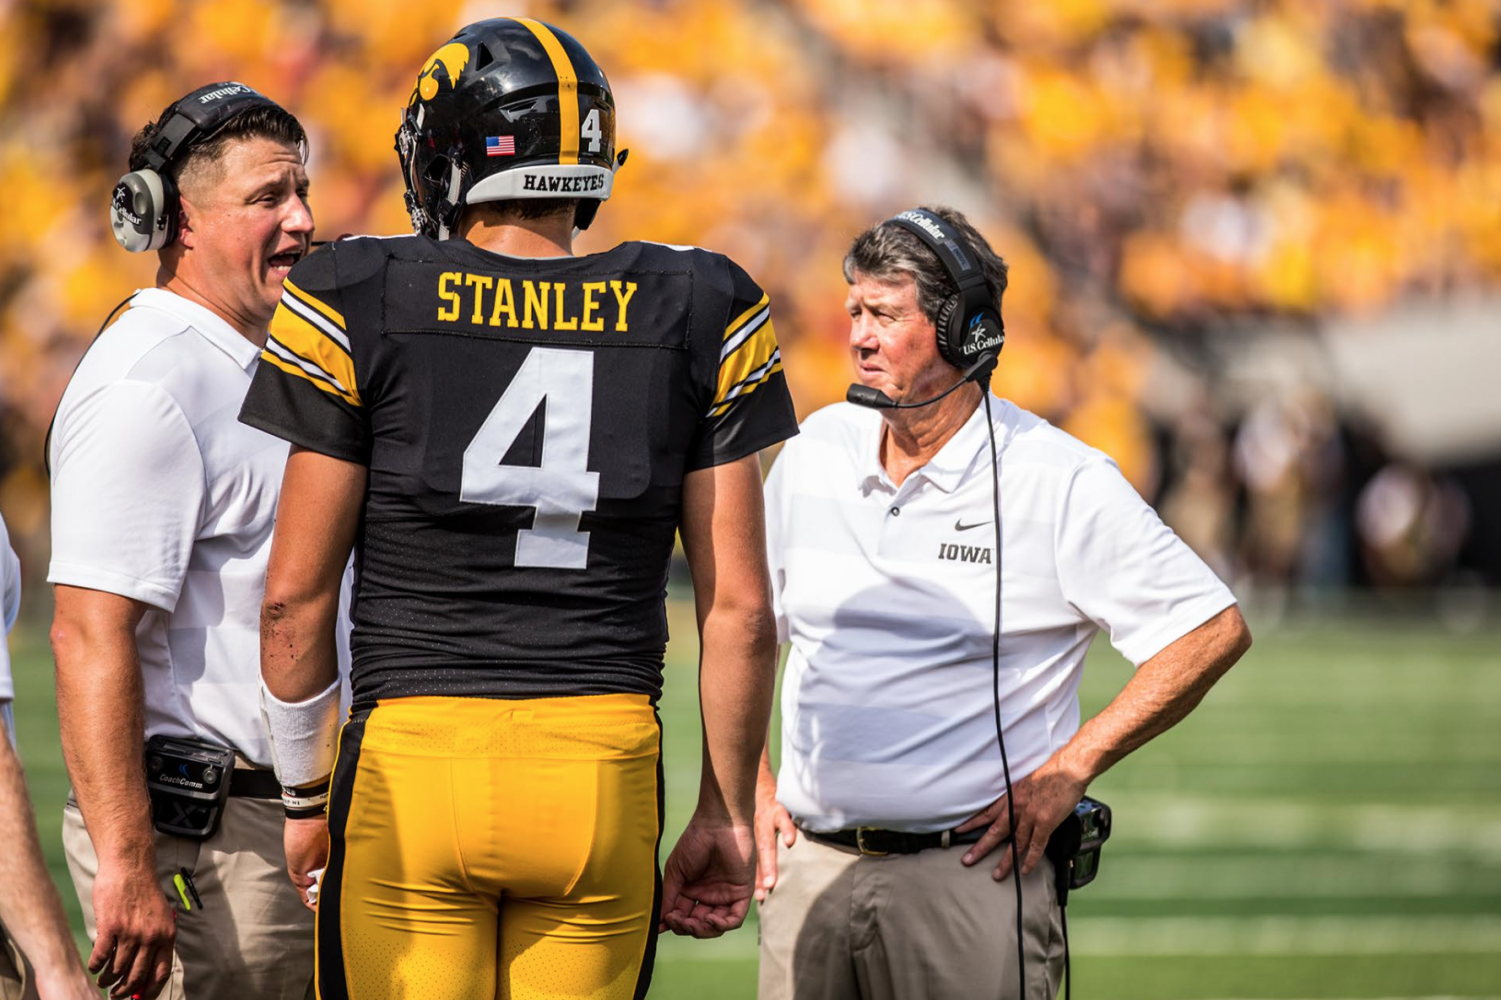 Iowa quarterback Nate Stanley talks with offensive coordinator Brian Ferentz during Iowa's game against Northern Illinois at Kinnick Stadium on Sept. 1, 2018. The Hawkeyes defeated the Huskies 33-7.